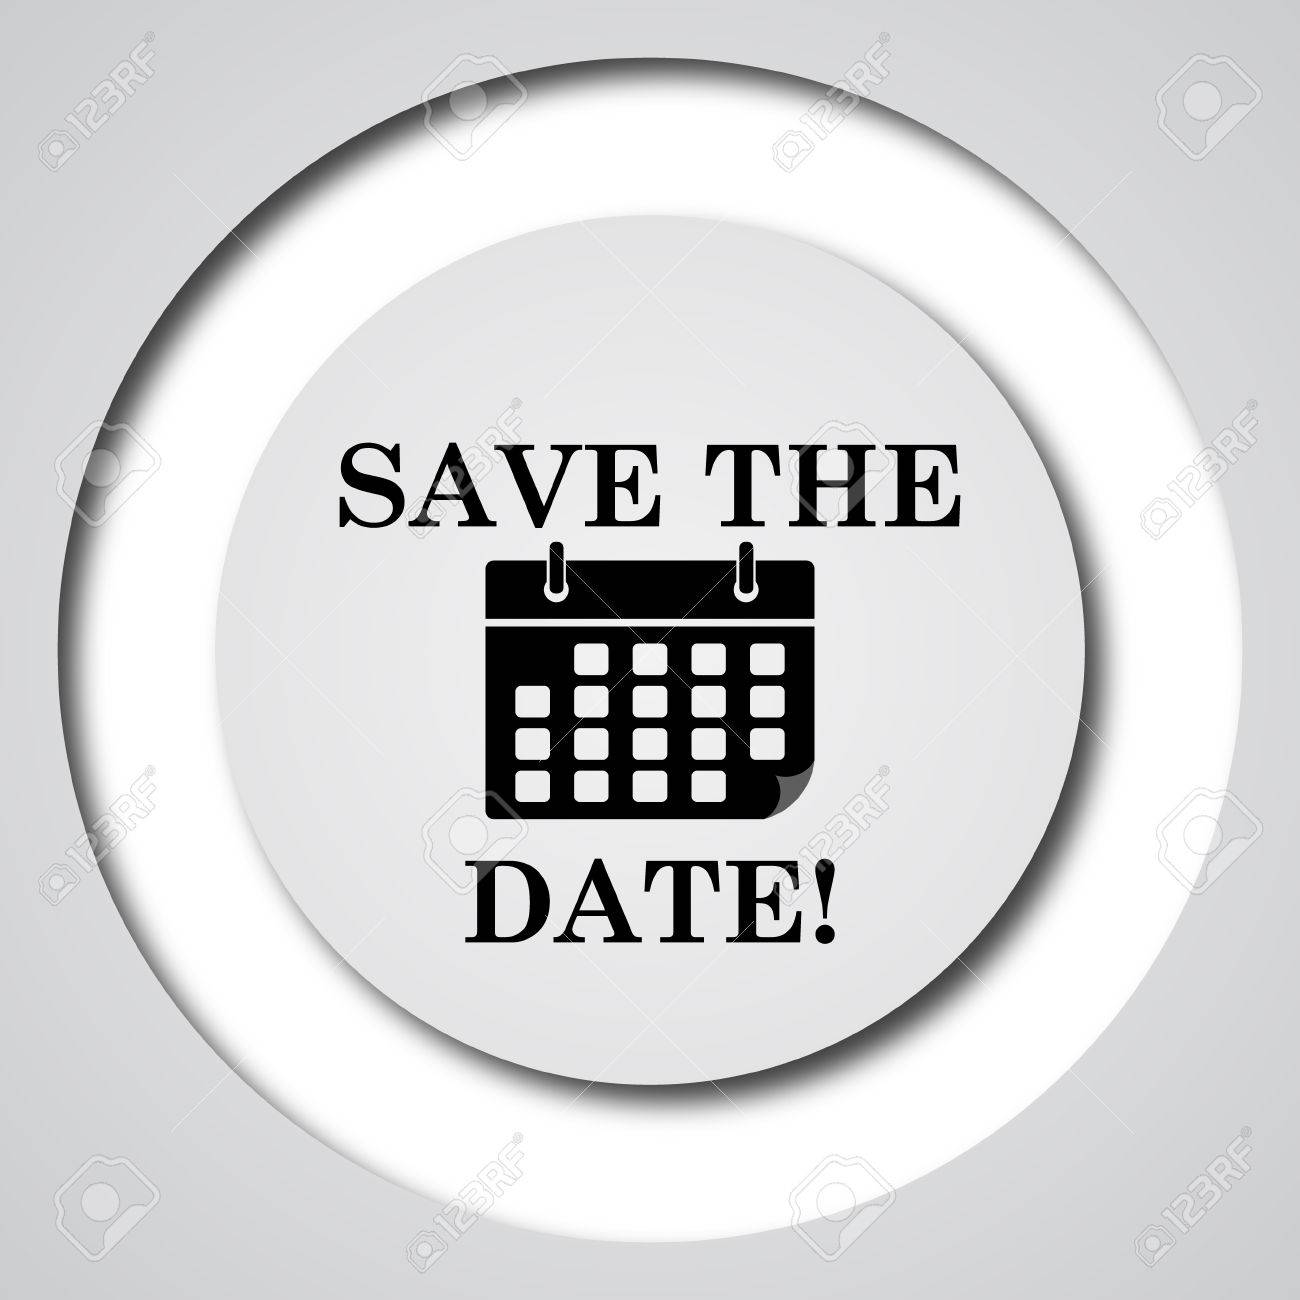 Save The Date Icon Internet Button On White Background Stock Photo Picture And Royalty Free Image Image 50706153